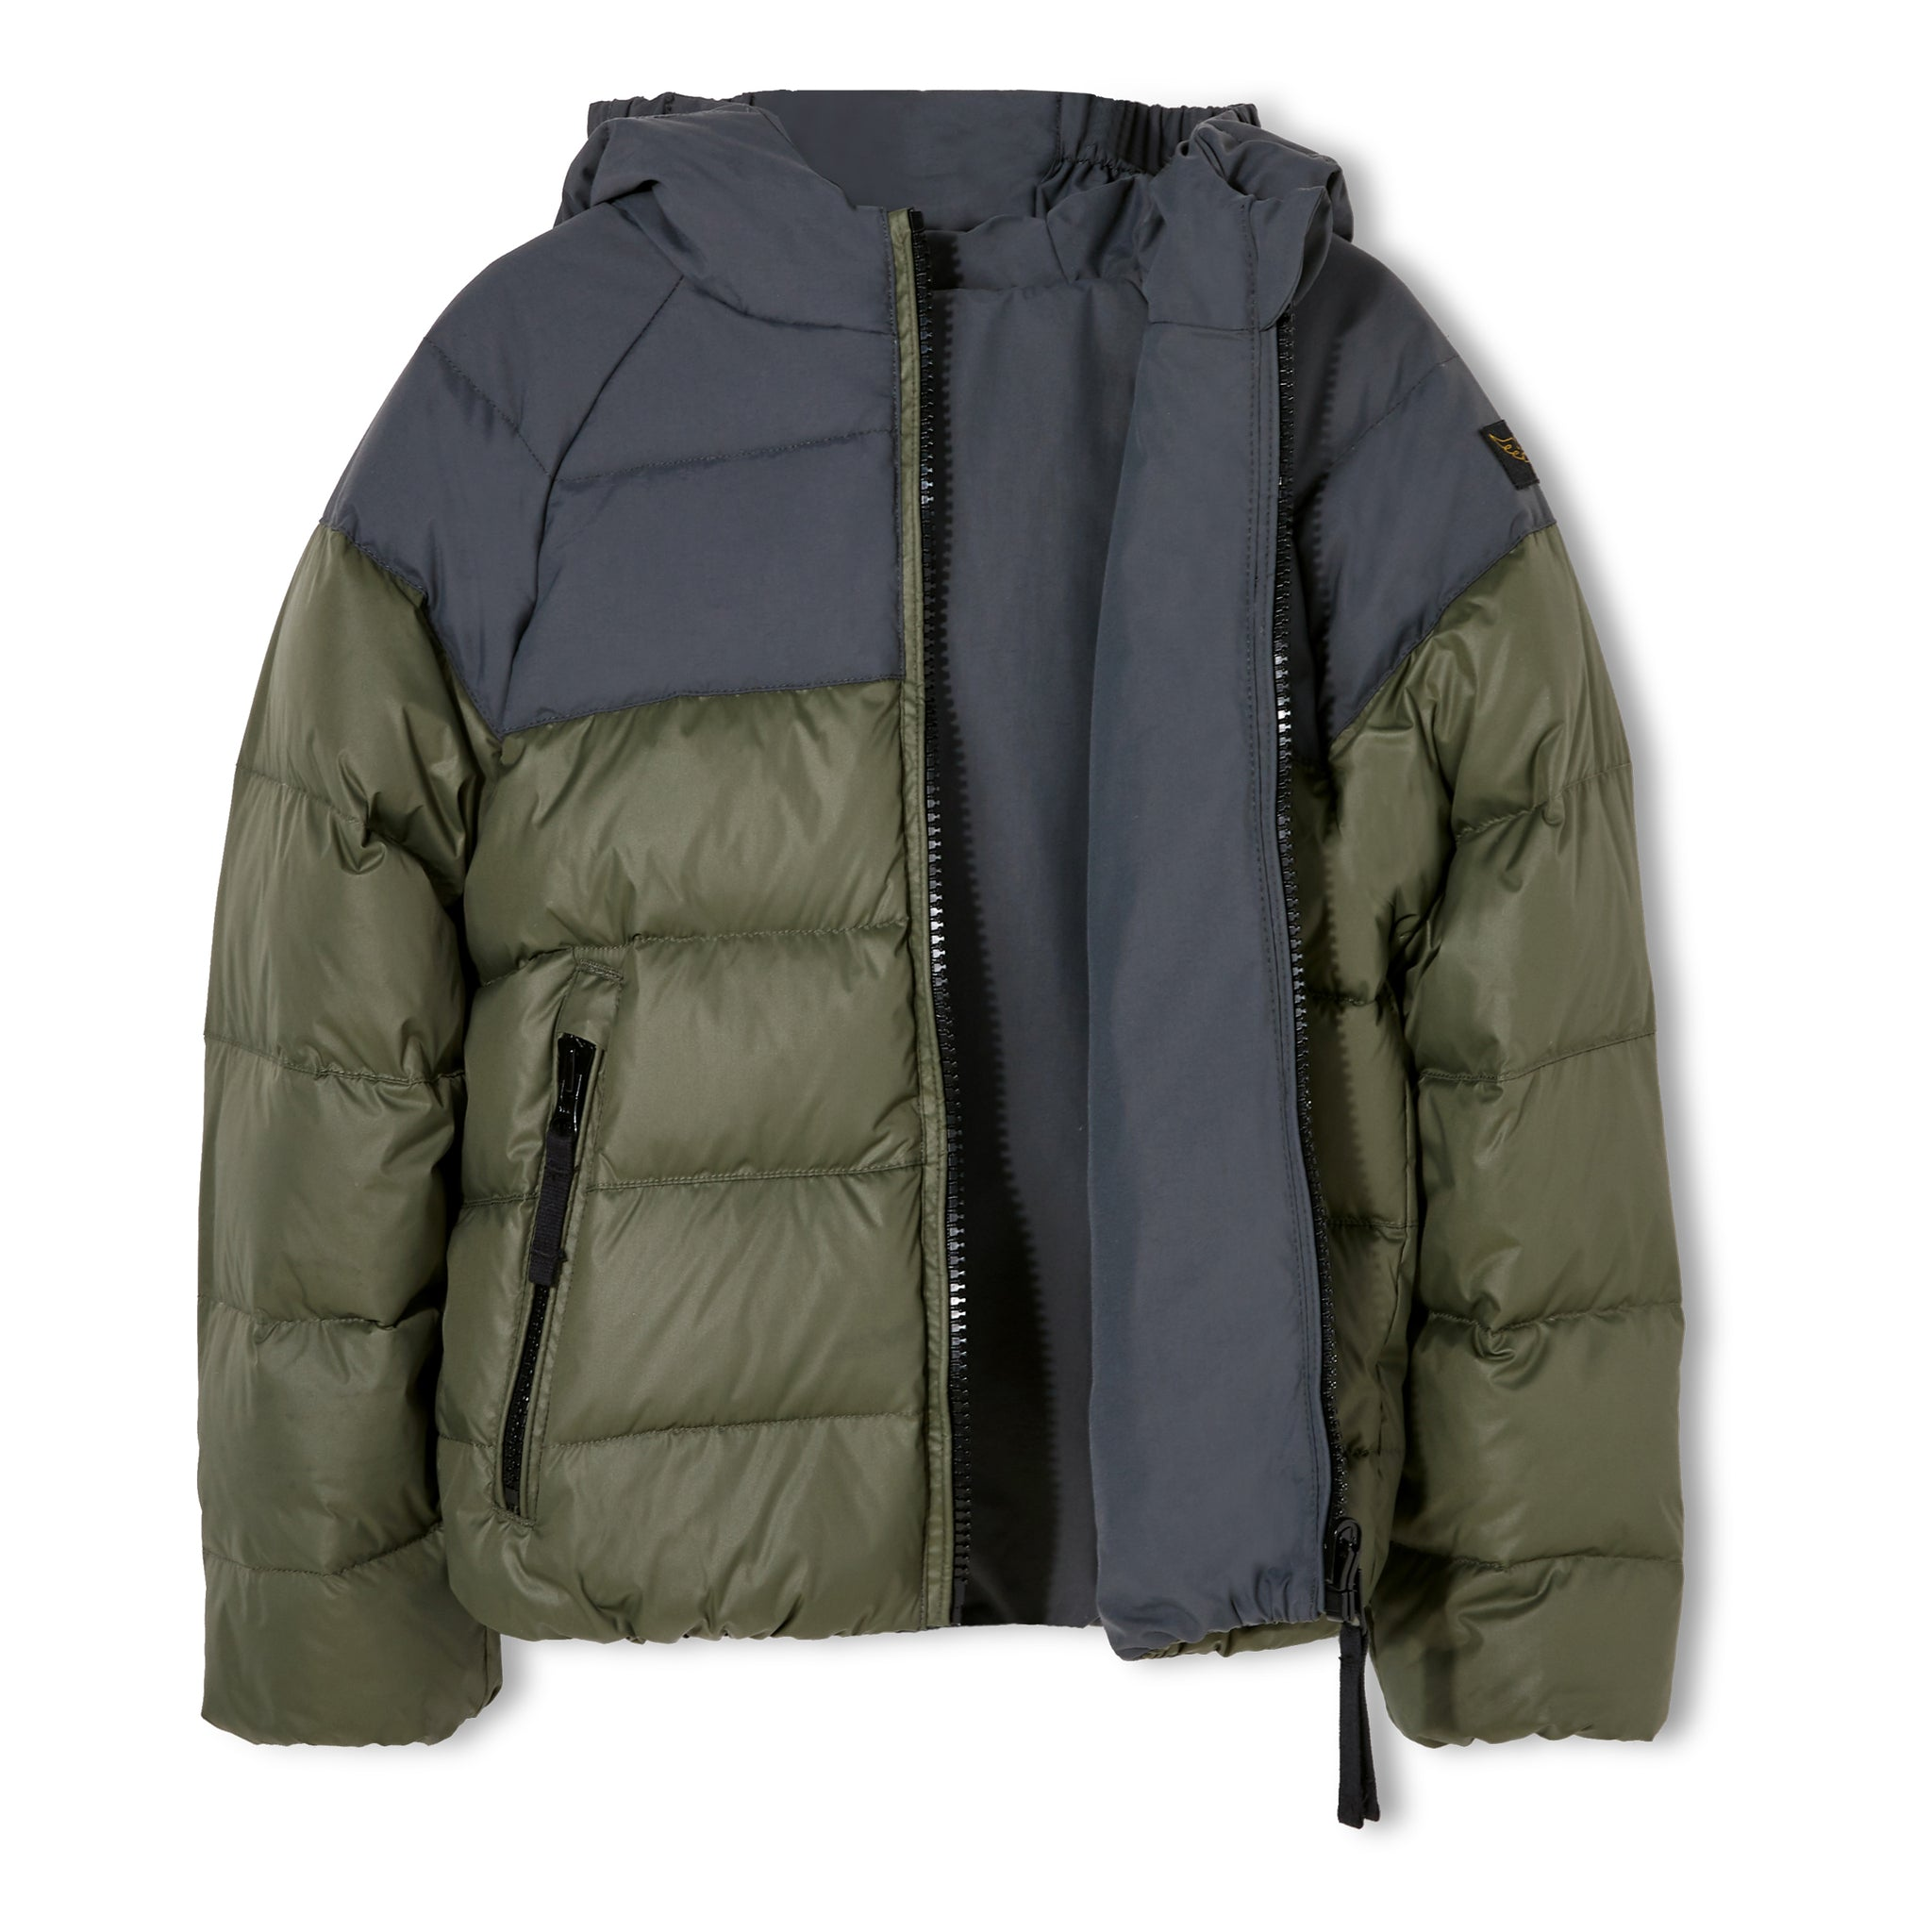 SNOWSCOUT Ash Black - Reversible Down Jacket 2